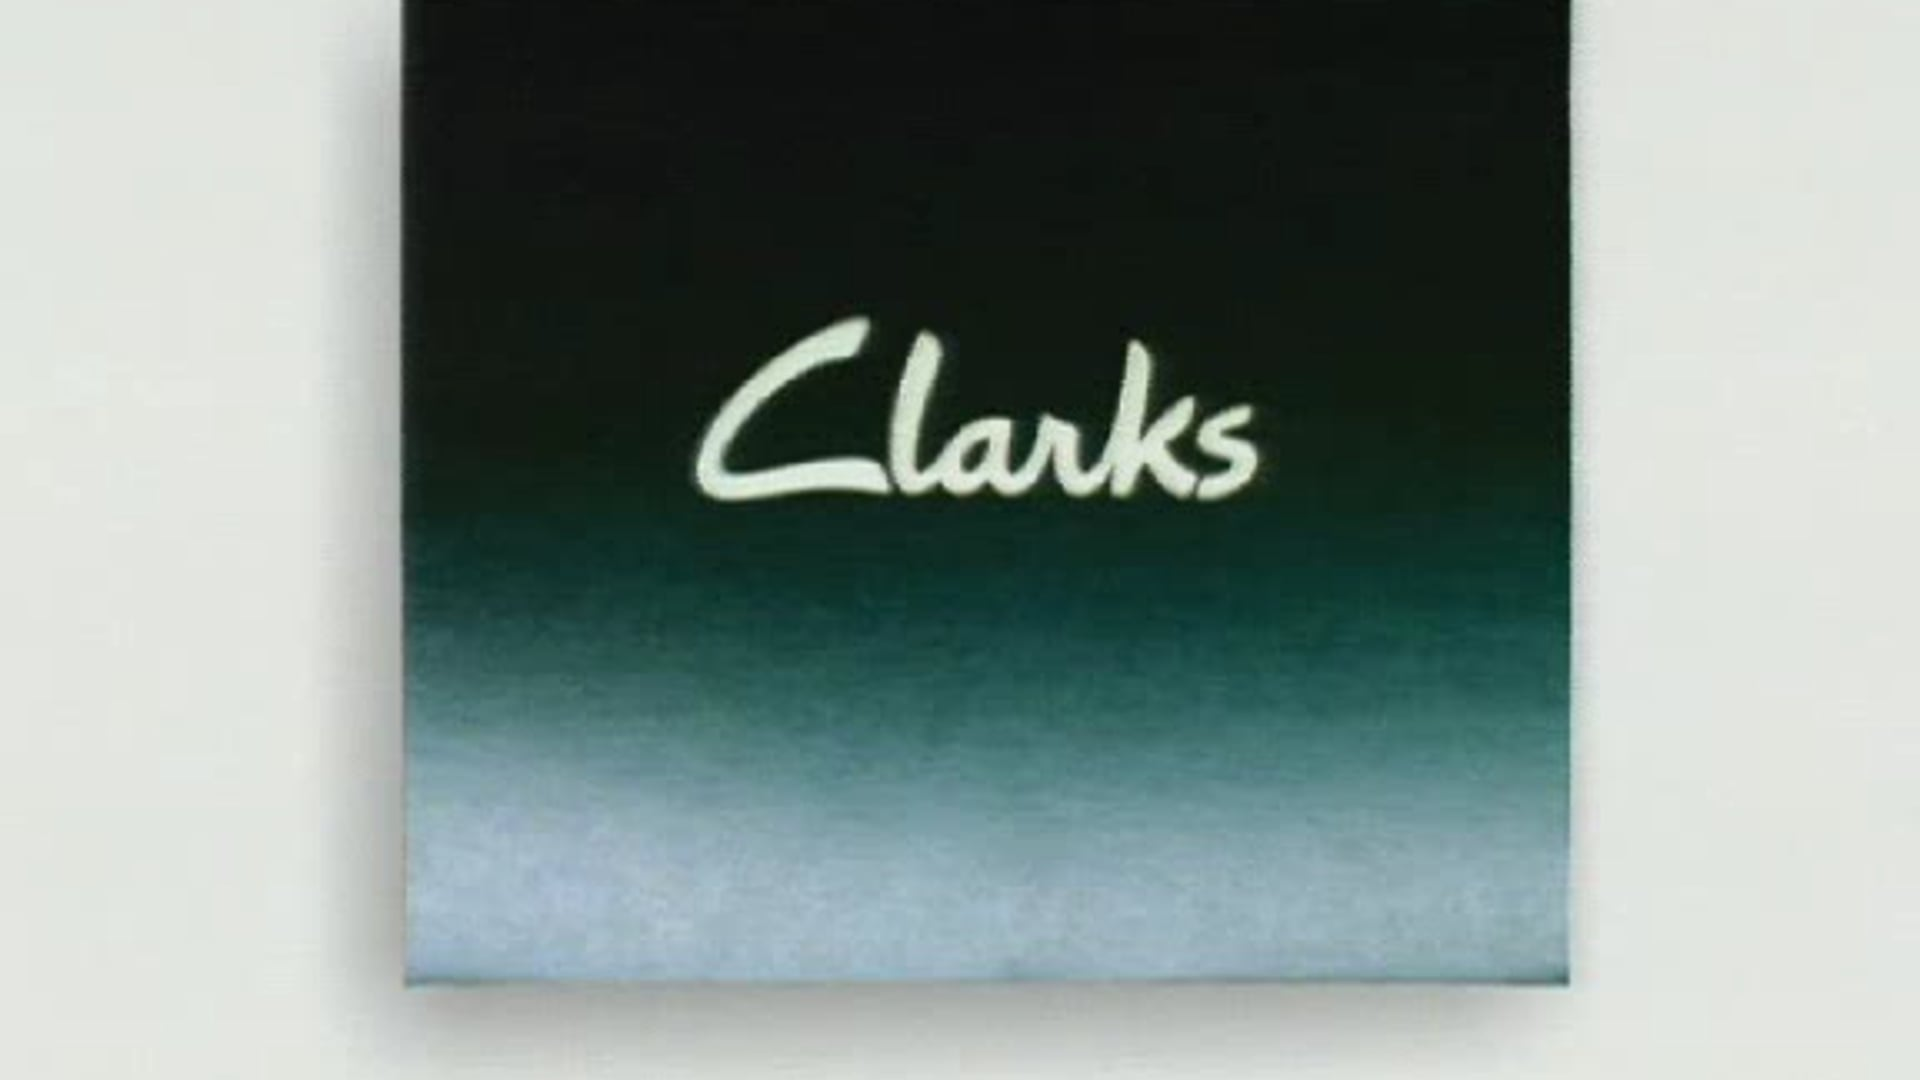 Clarks - New Shoes Leaves